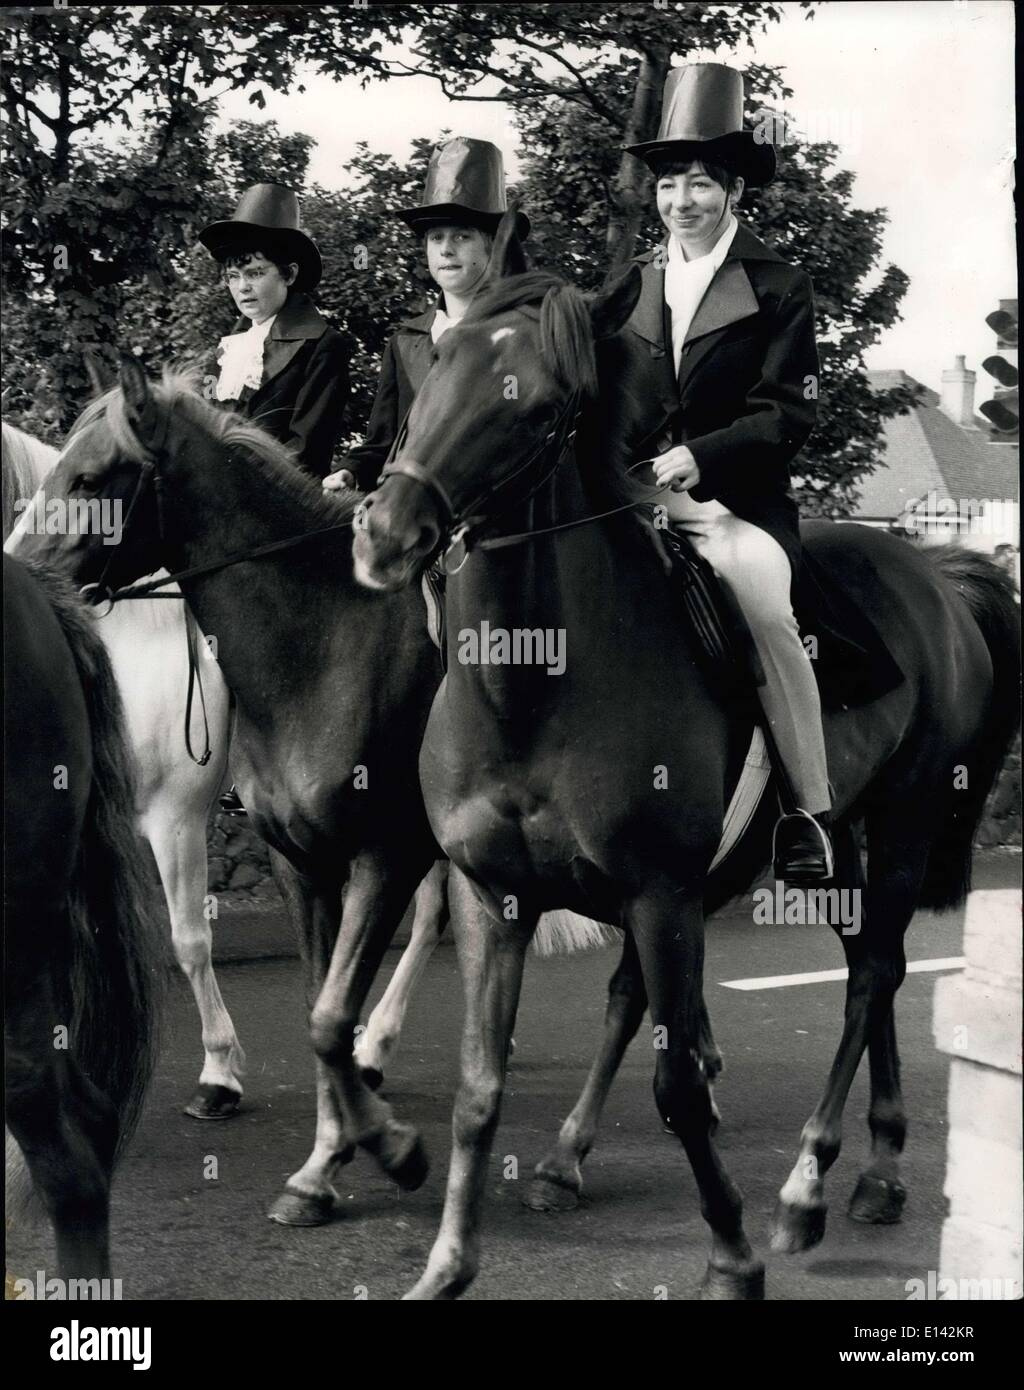 Mar. 31, 2012 - Riders representing officers of the feudal court of St. Michel and King's officers.  Pi - Stock Image